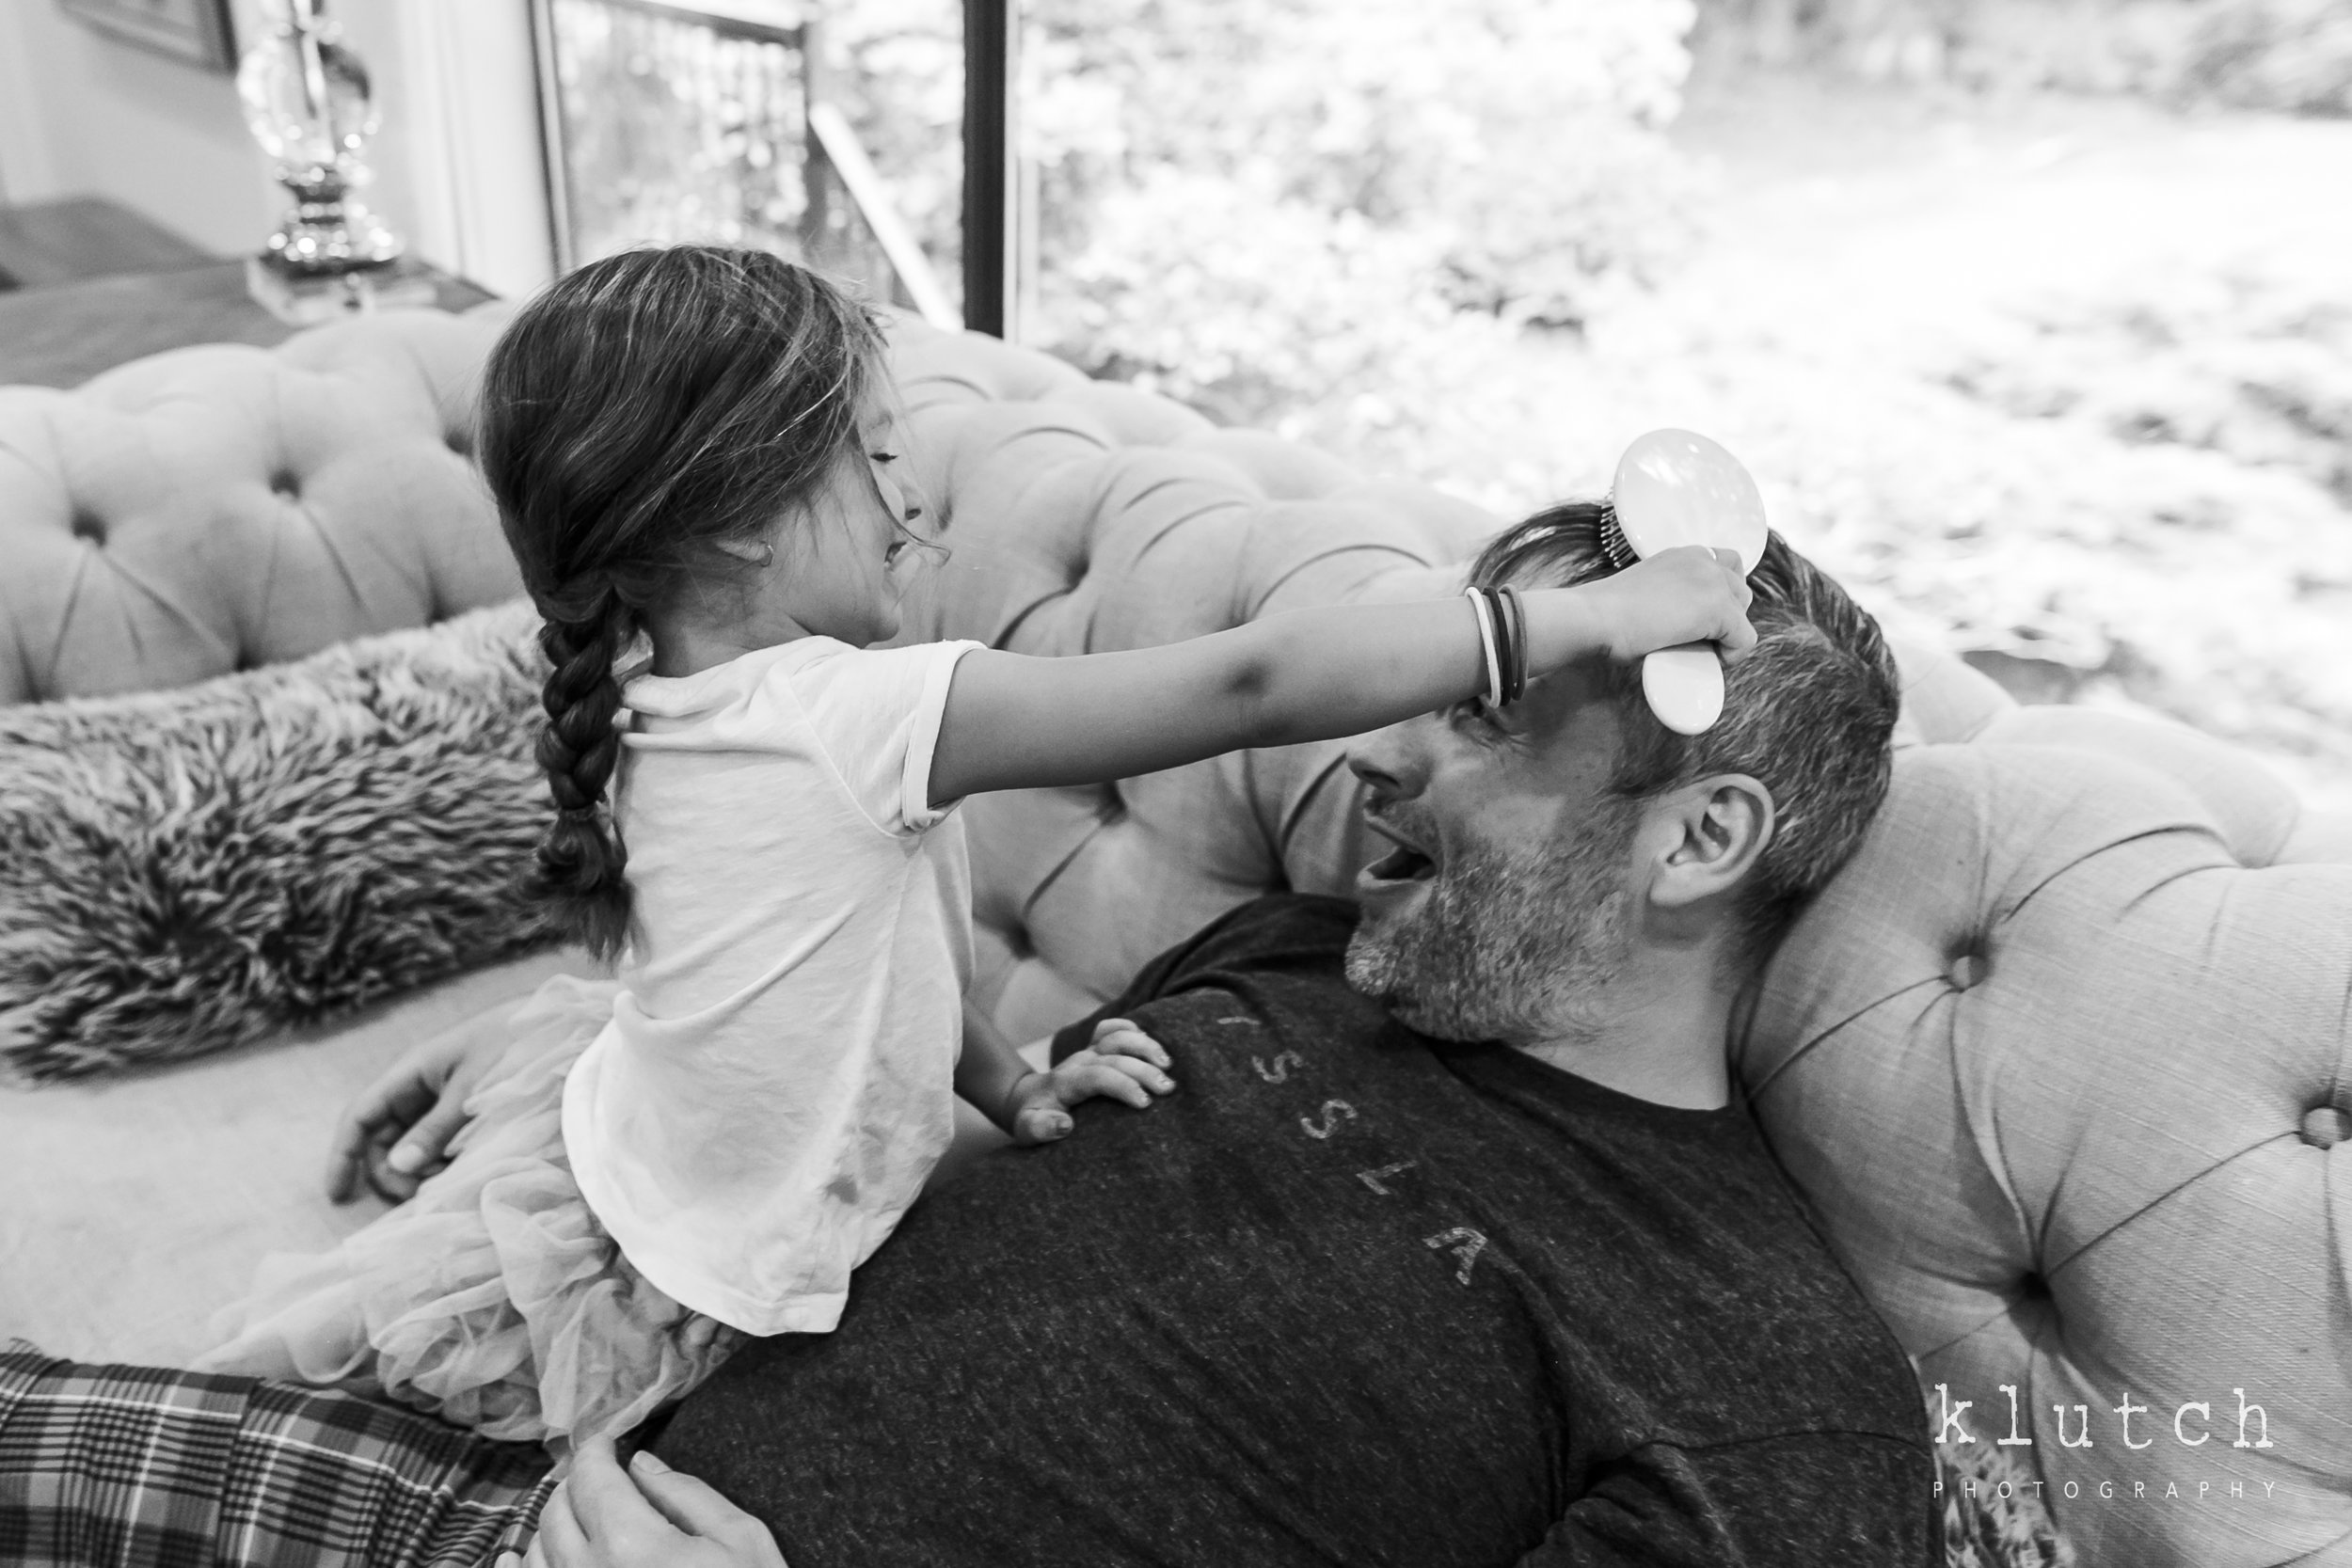 daughter combing dads hair,Klutch Photography,white rock family photographer, vancouver family photographer, whiterock lifestyle photographer, life unscripted photographer, life unscripted session, photography,Dina Ferreira Stoddard-9855.jpg